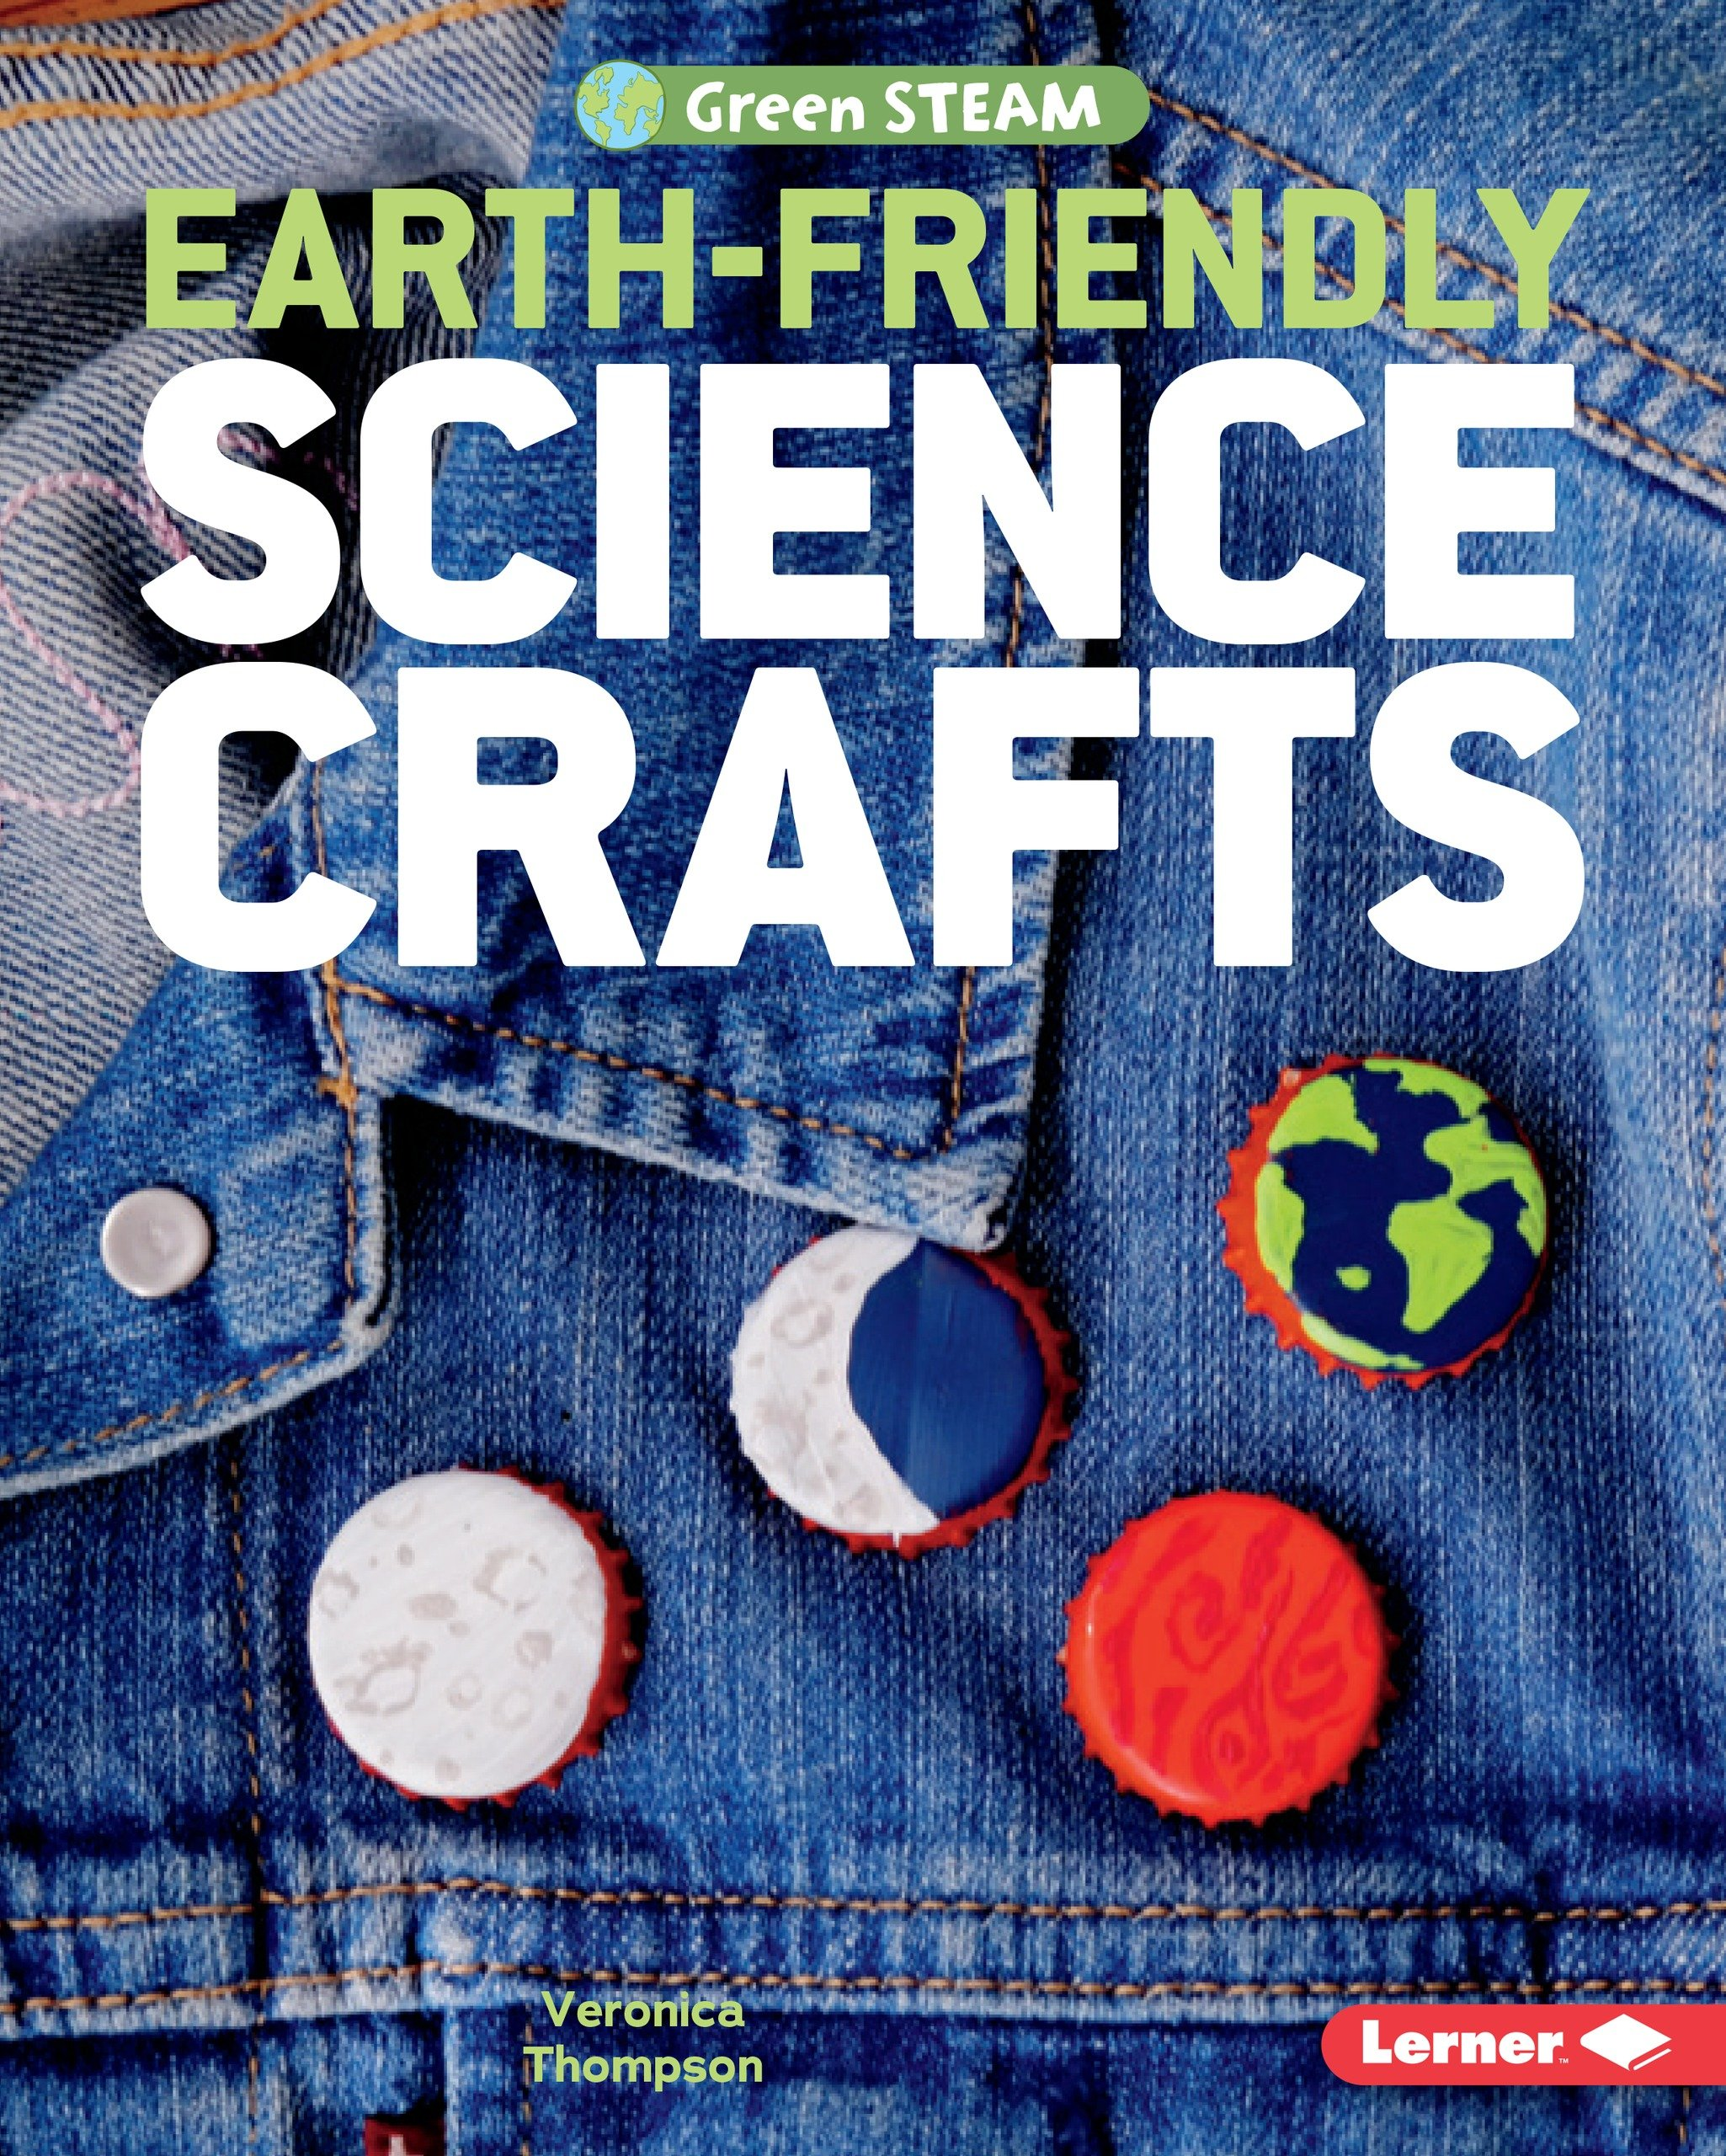 Earth-Friendly Science Crafts (Green STEAM)